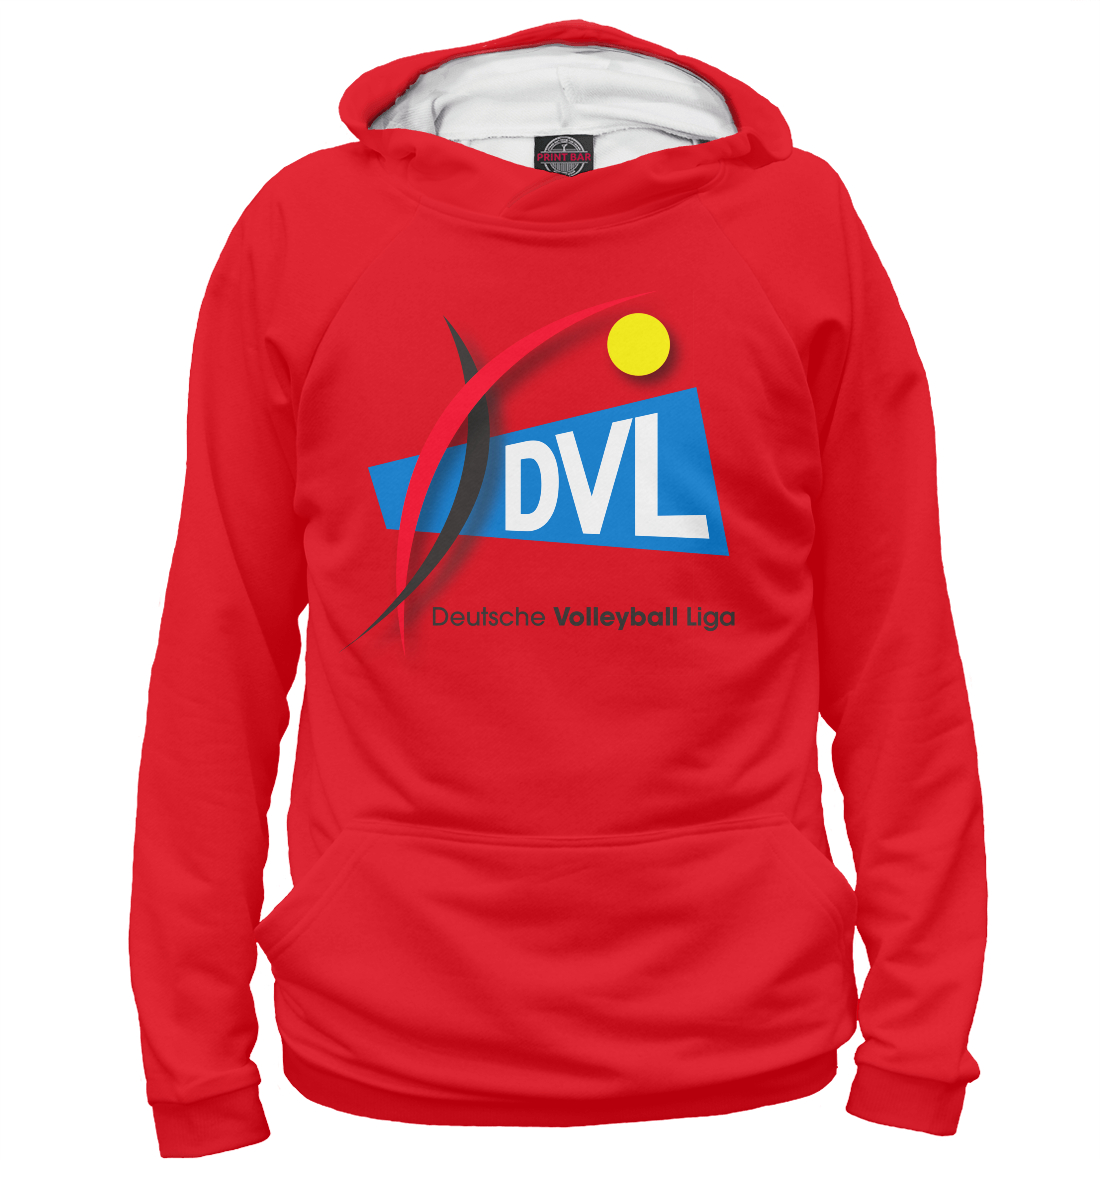 Купить DVL (Deutsche volleyball Liga), Printbar, Худи, VLB-396096-hud-2